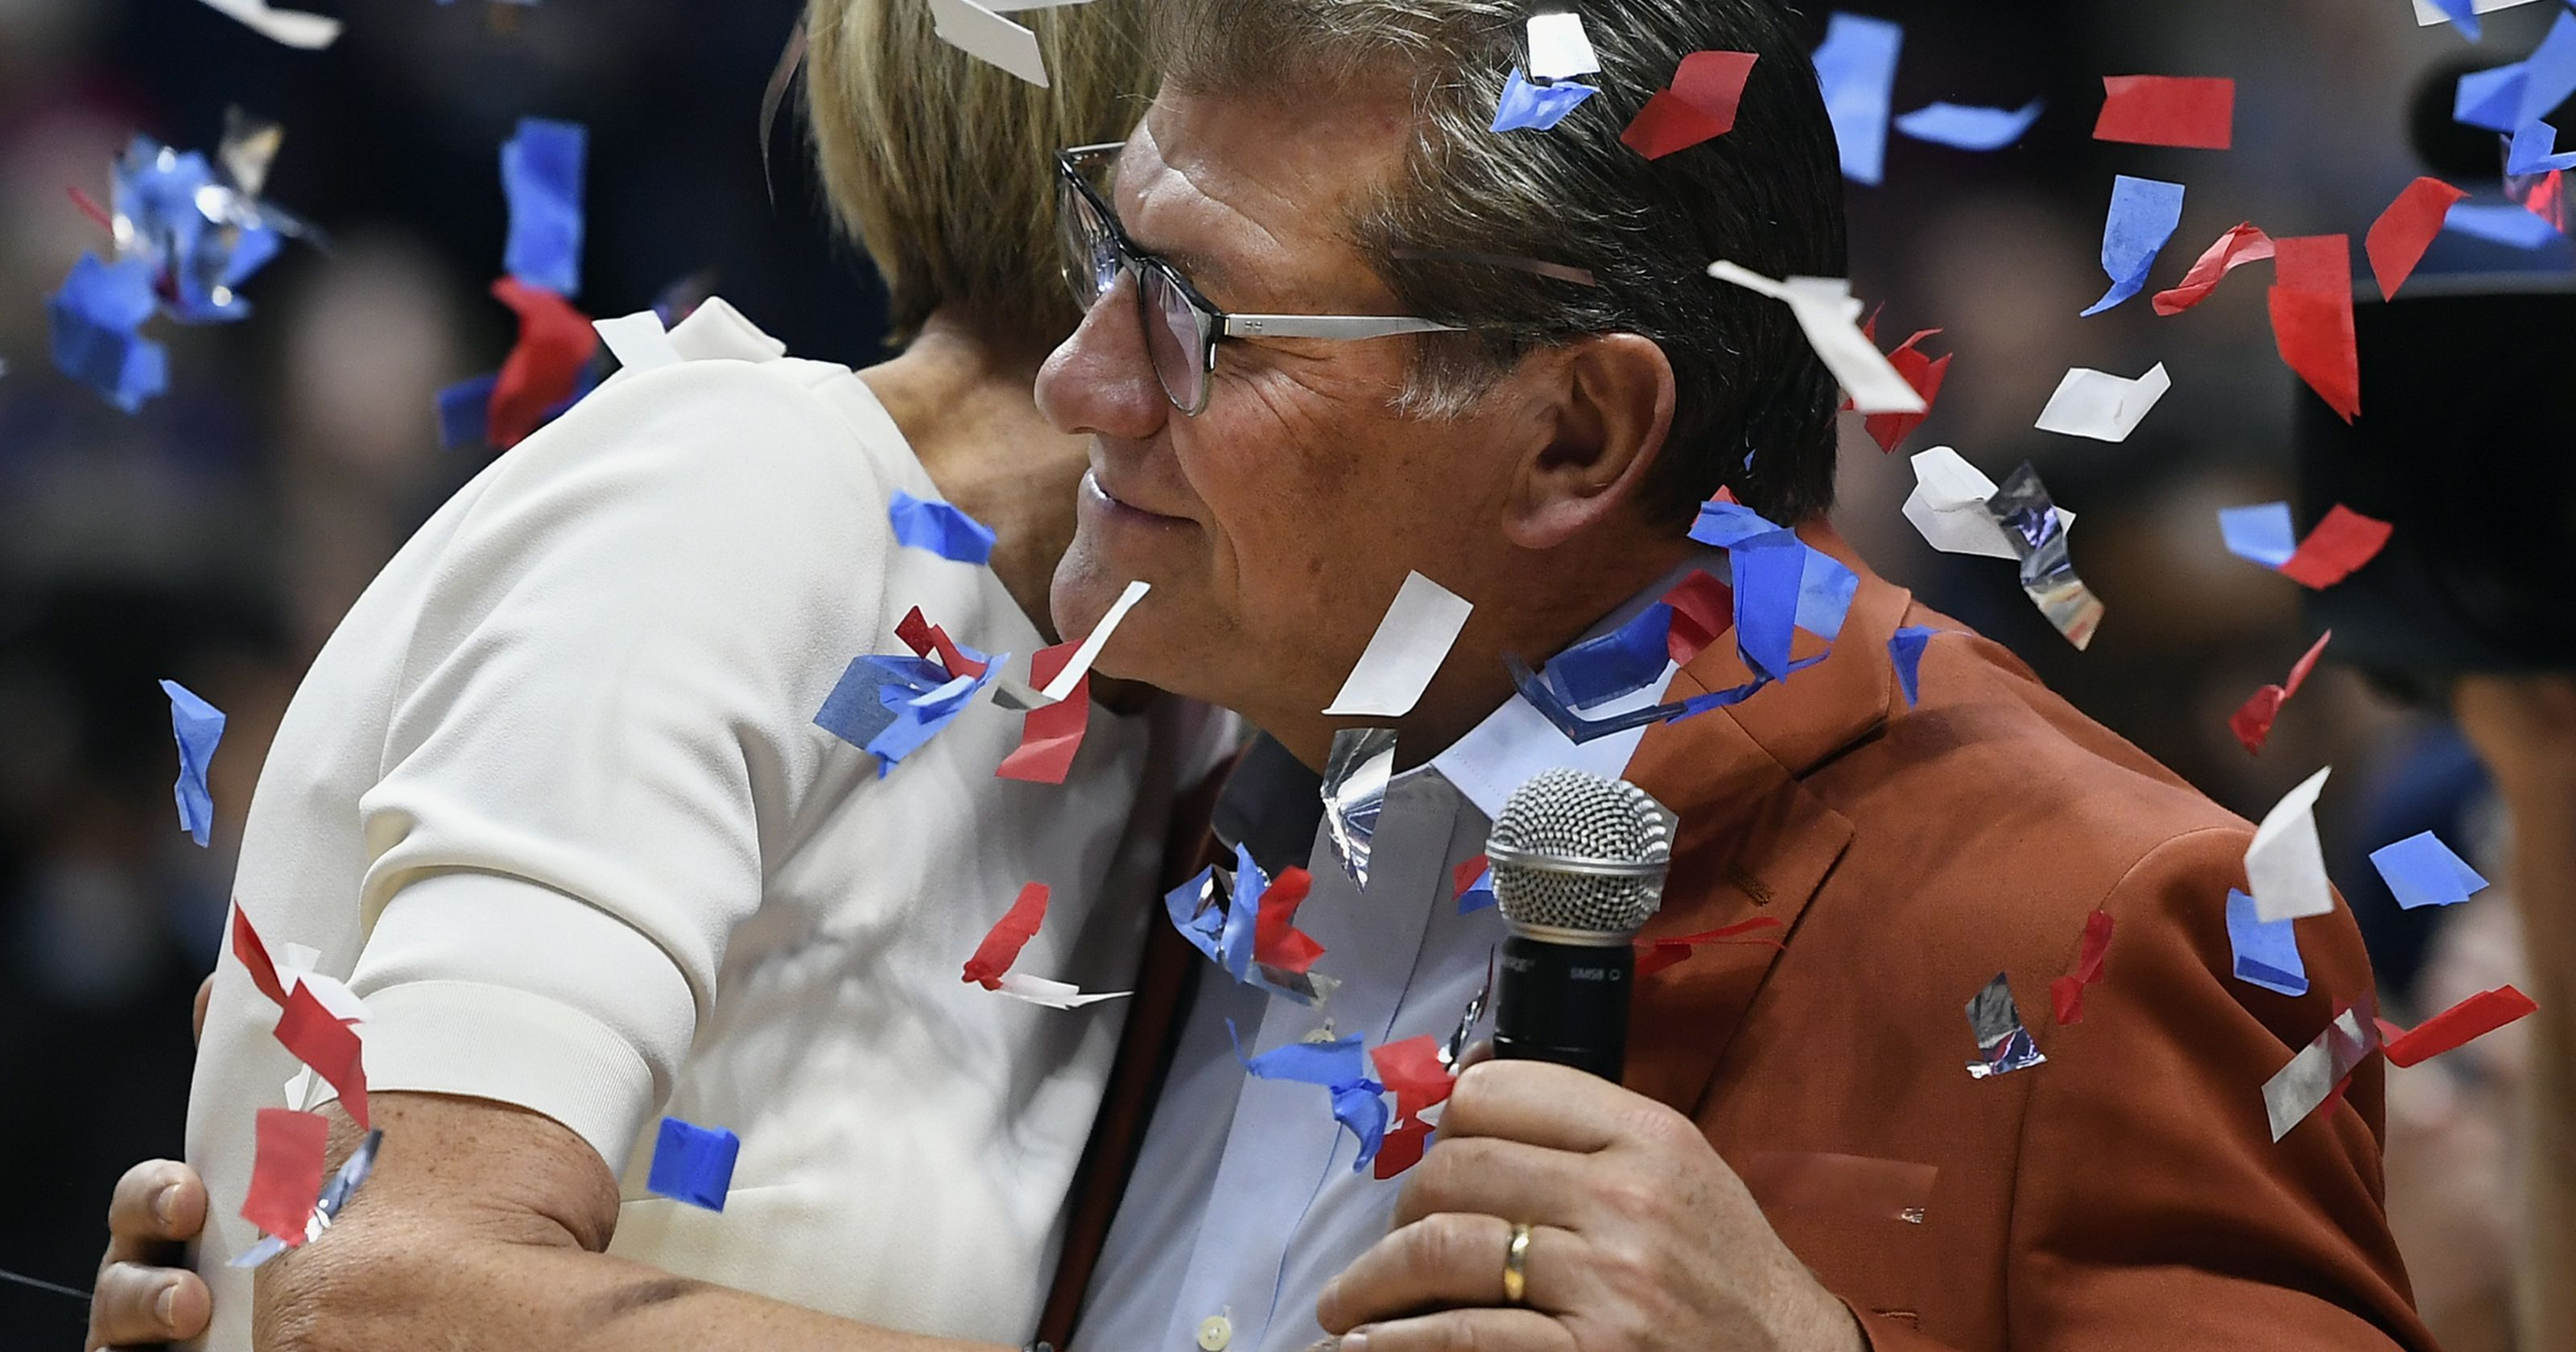 Chris Dailey and Geno Auriemma celebrate after their 1,000 win. (Associated Press)